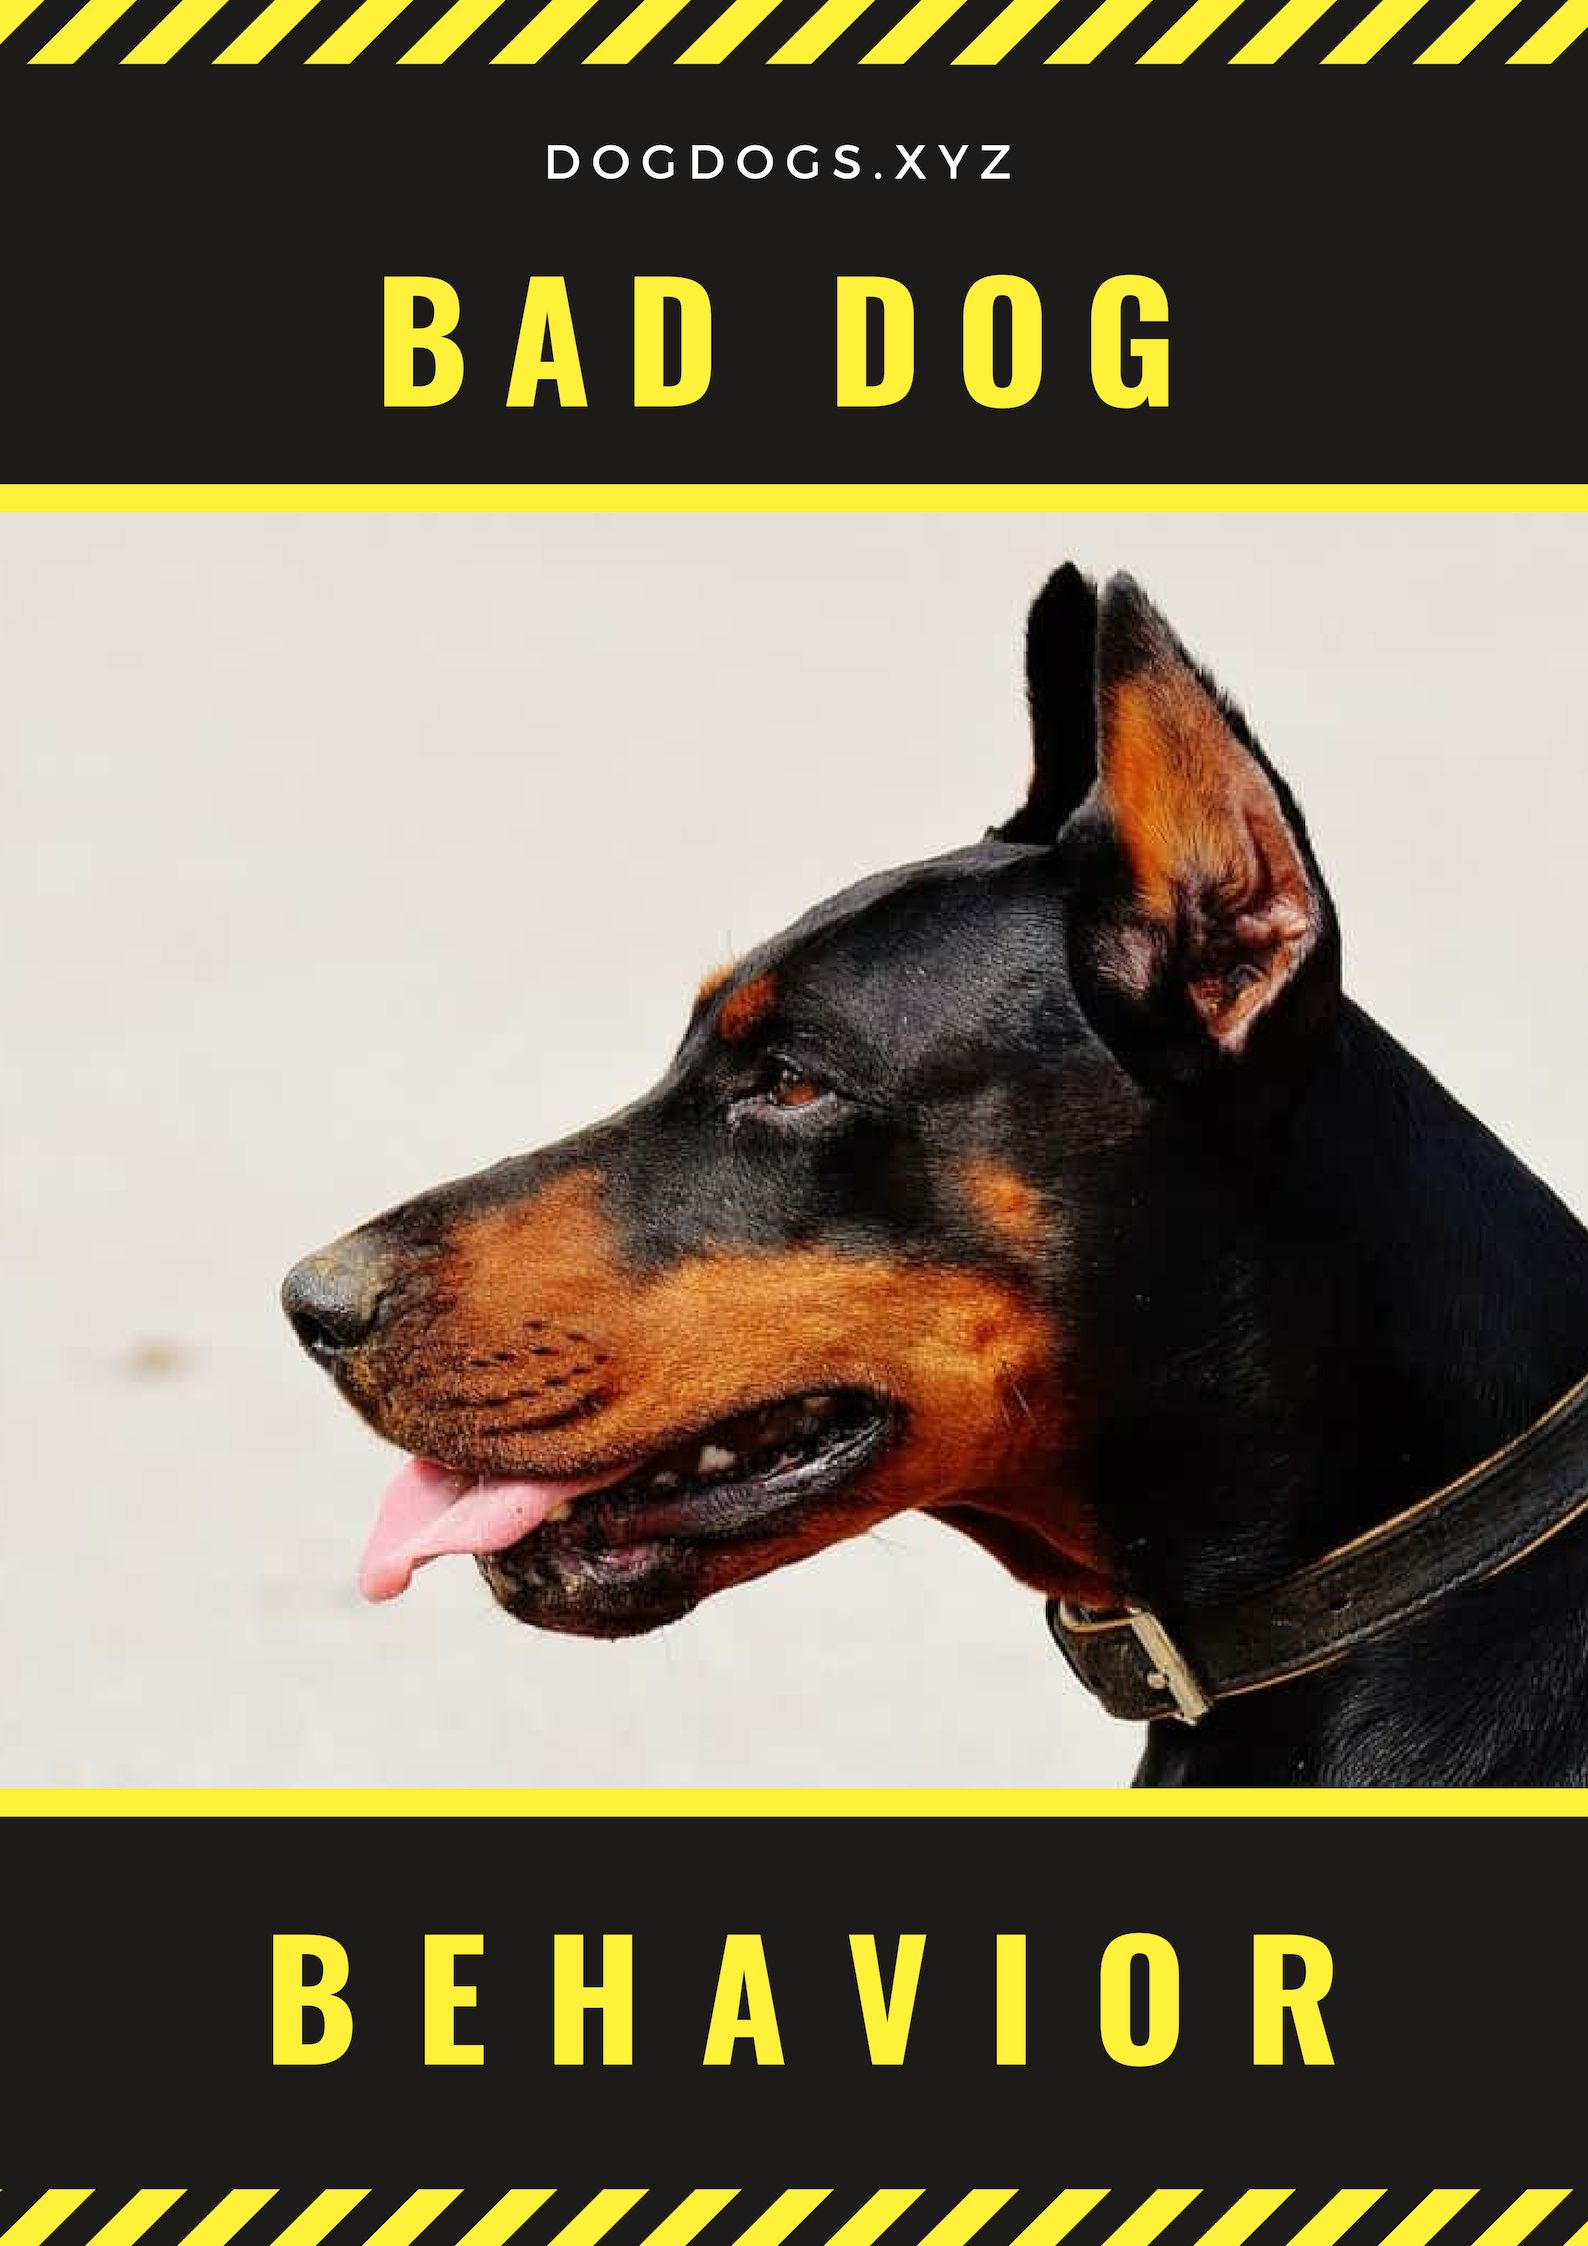 Bad Dog Behavior Needs To Be Remedied Within Period In Order To